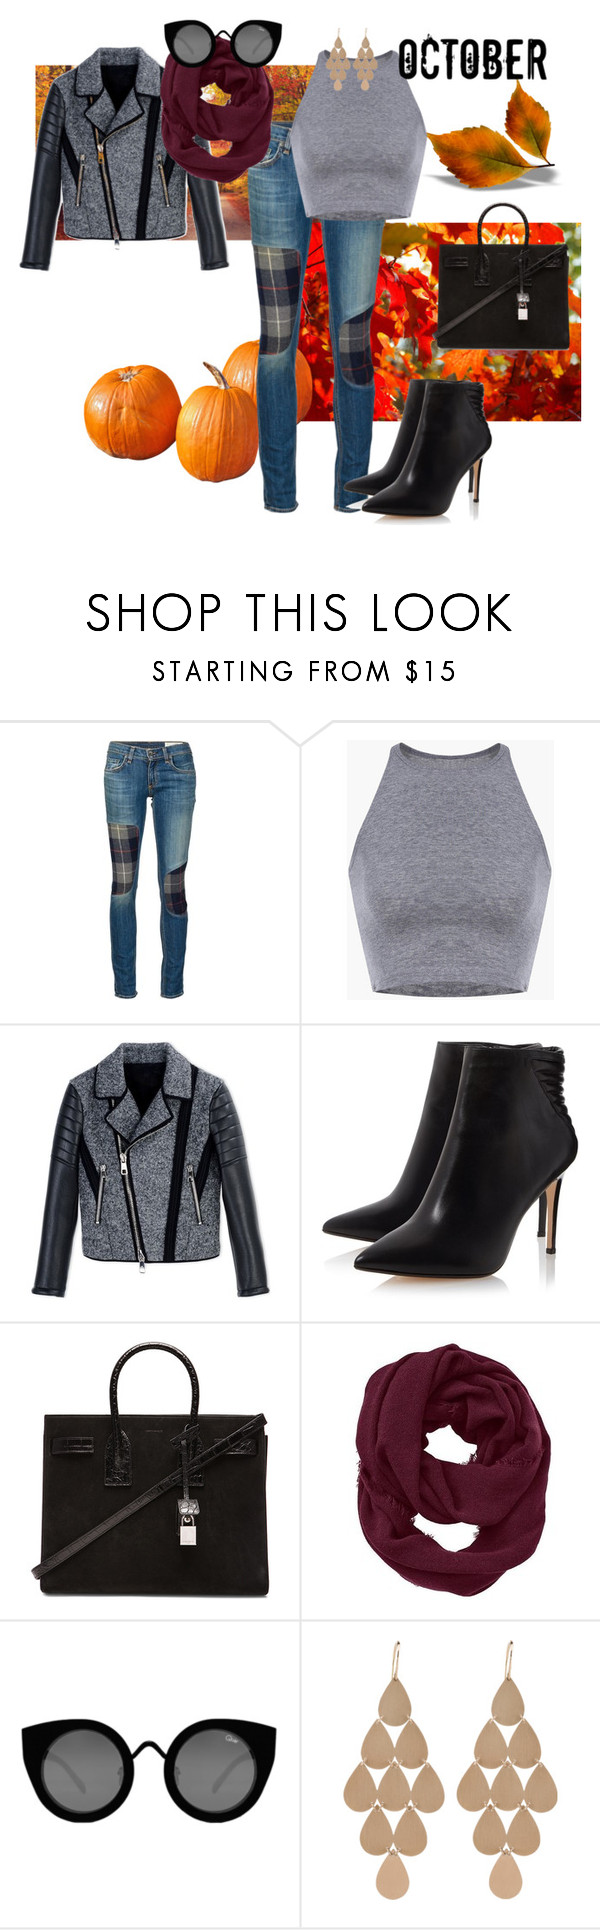 Welcome October! by flap-11 on Polyvore featuring moda, Neil Barrett, rag & bone/JEAN, Yves Saint Laurent, Irene Neuwirth, Athleta, Quay, autumn, polyvorecommunity and Autumncolors